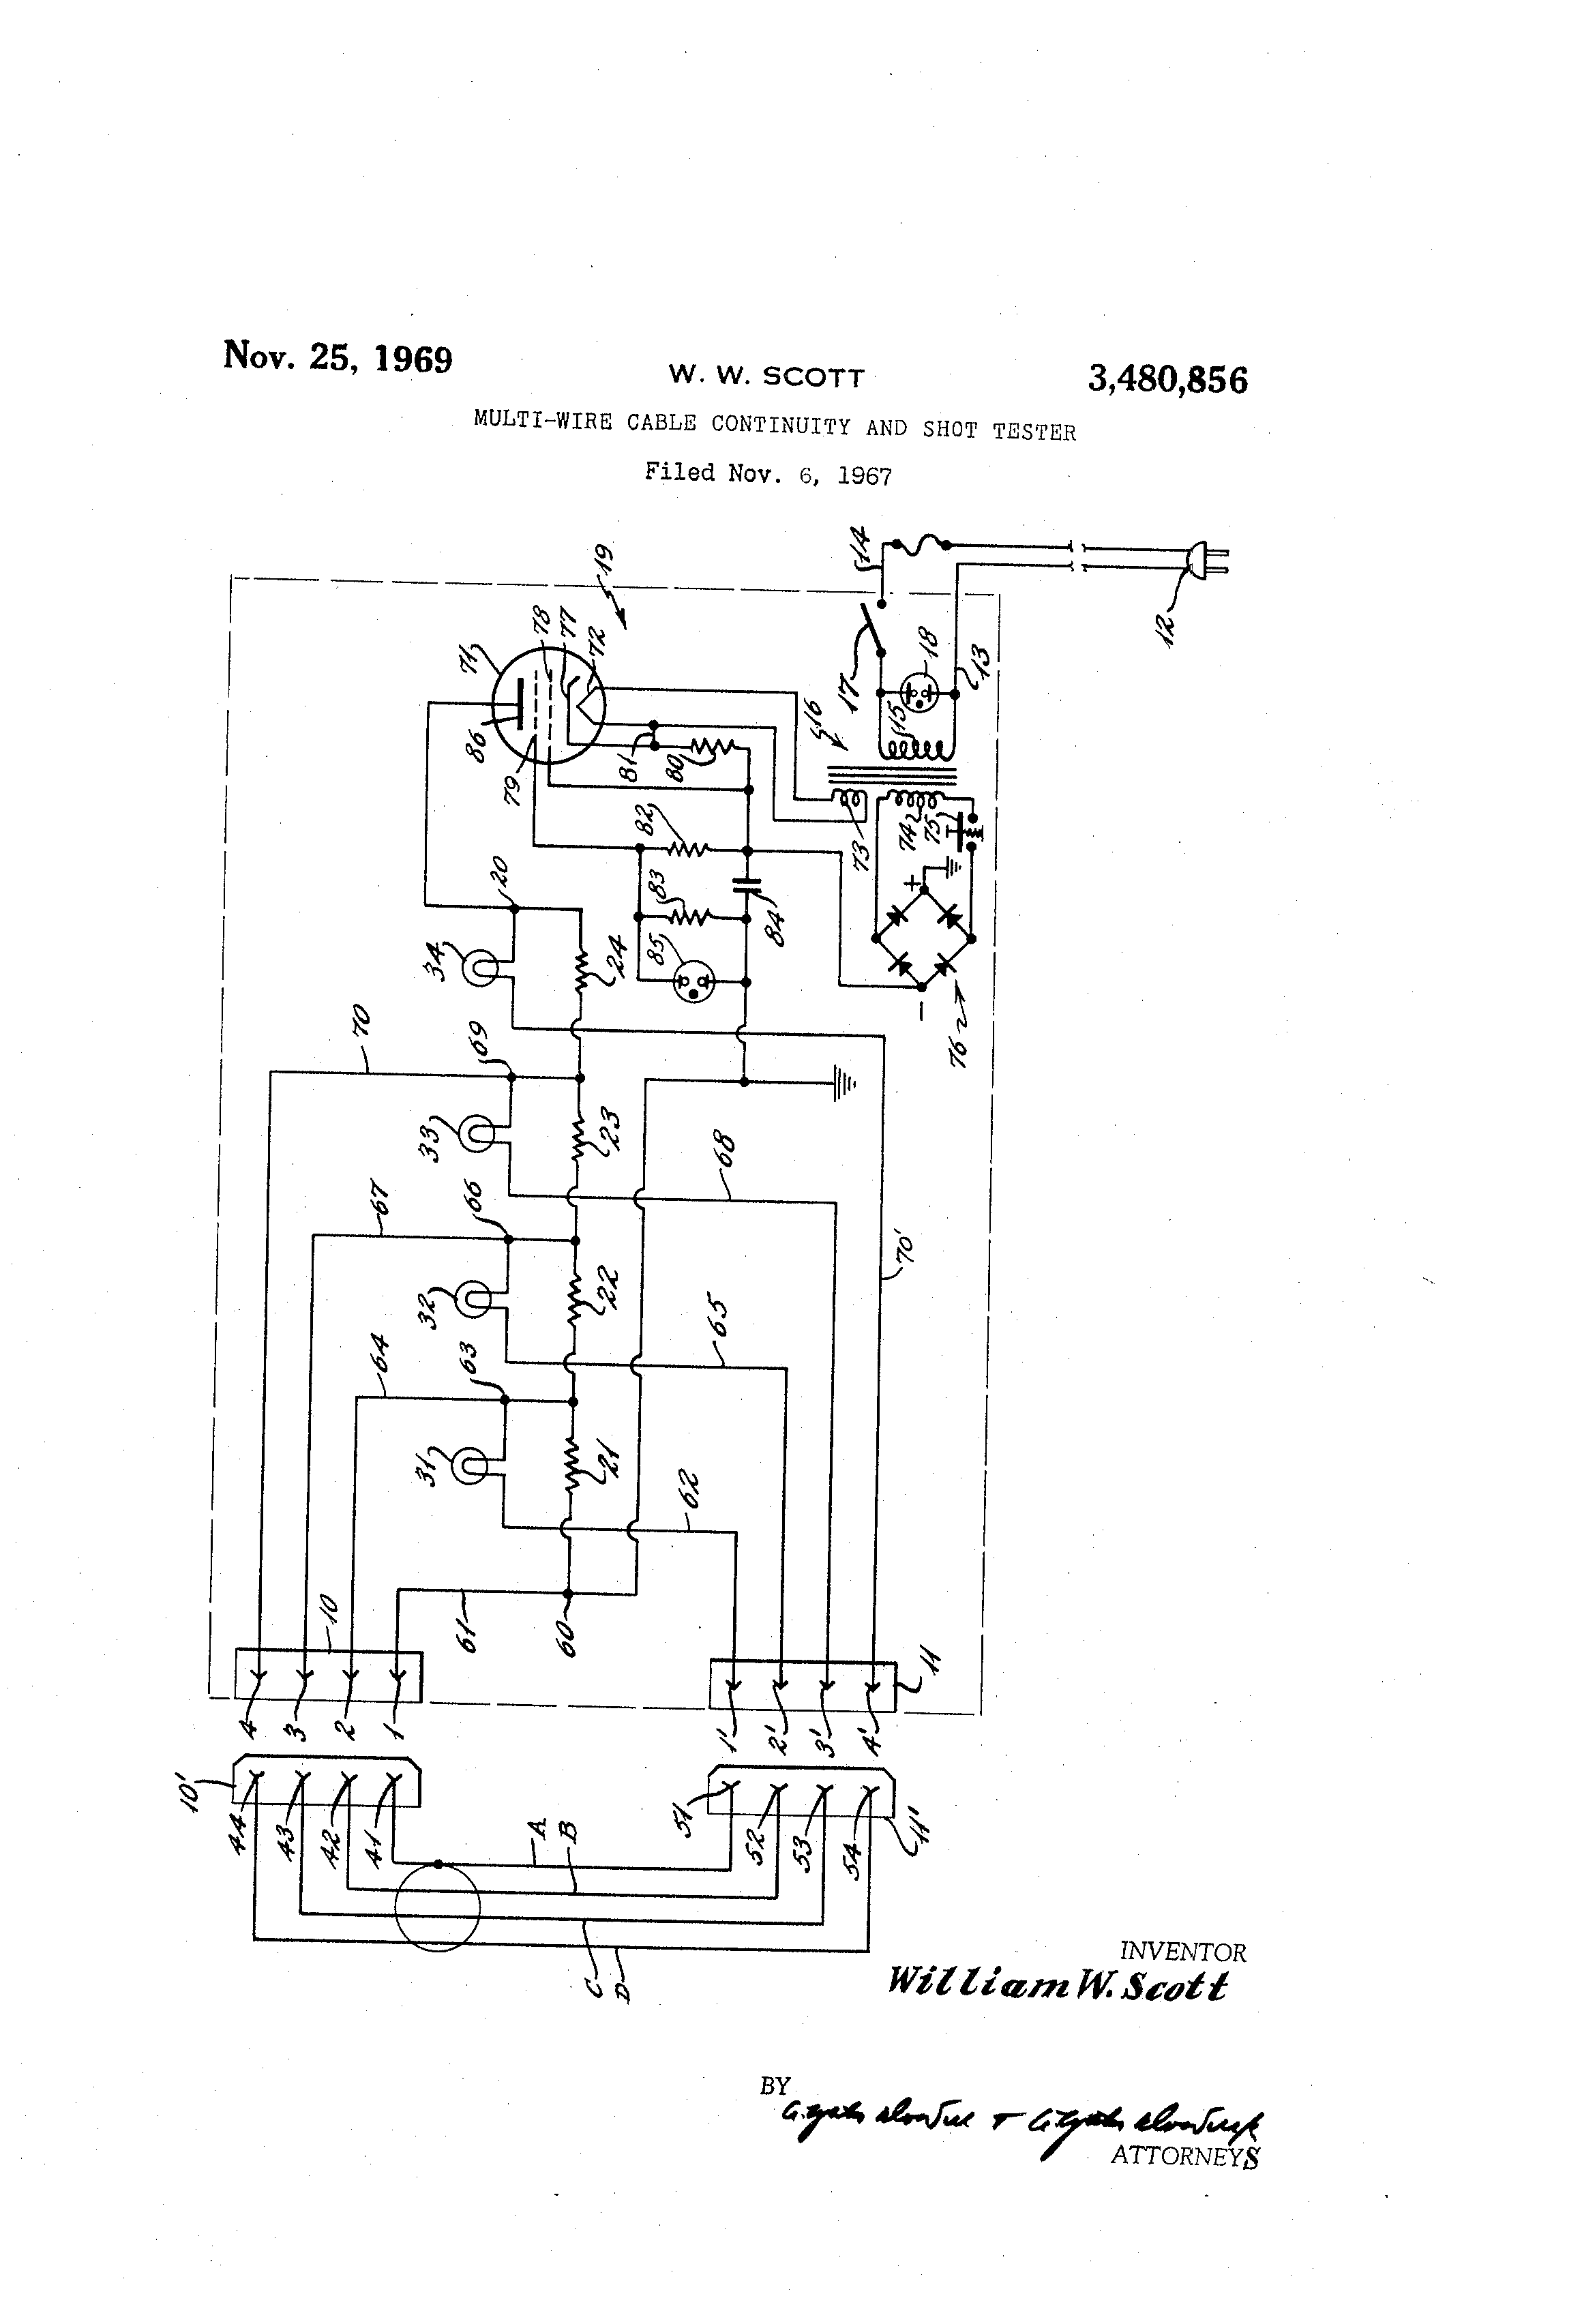 brevet us3480856 multi wire cable continuity and short tester  patent drawing